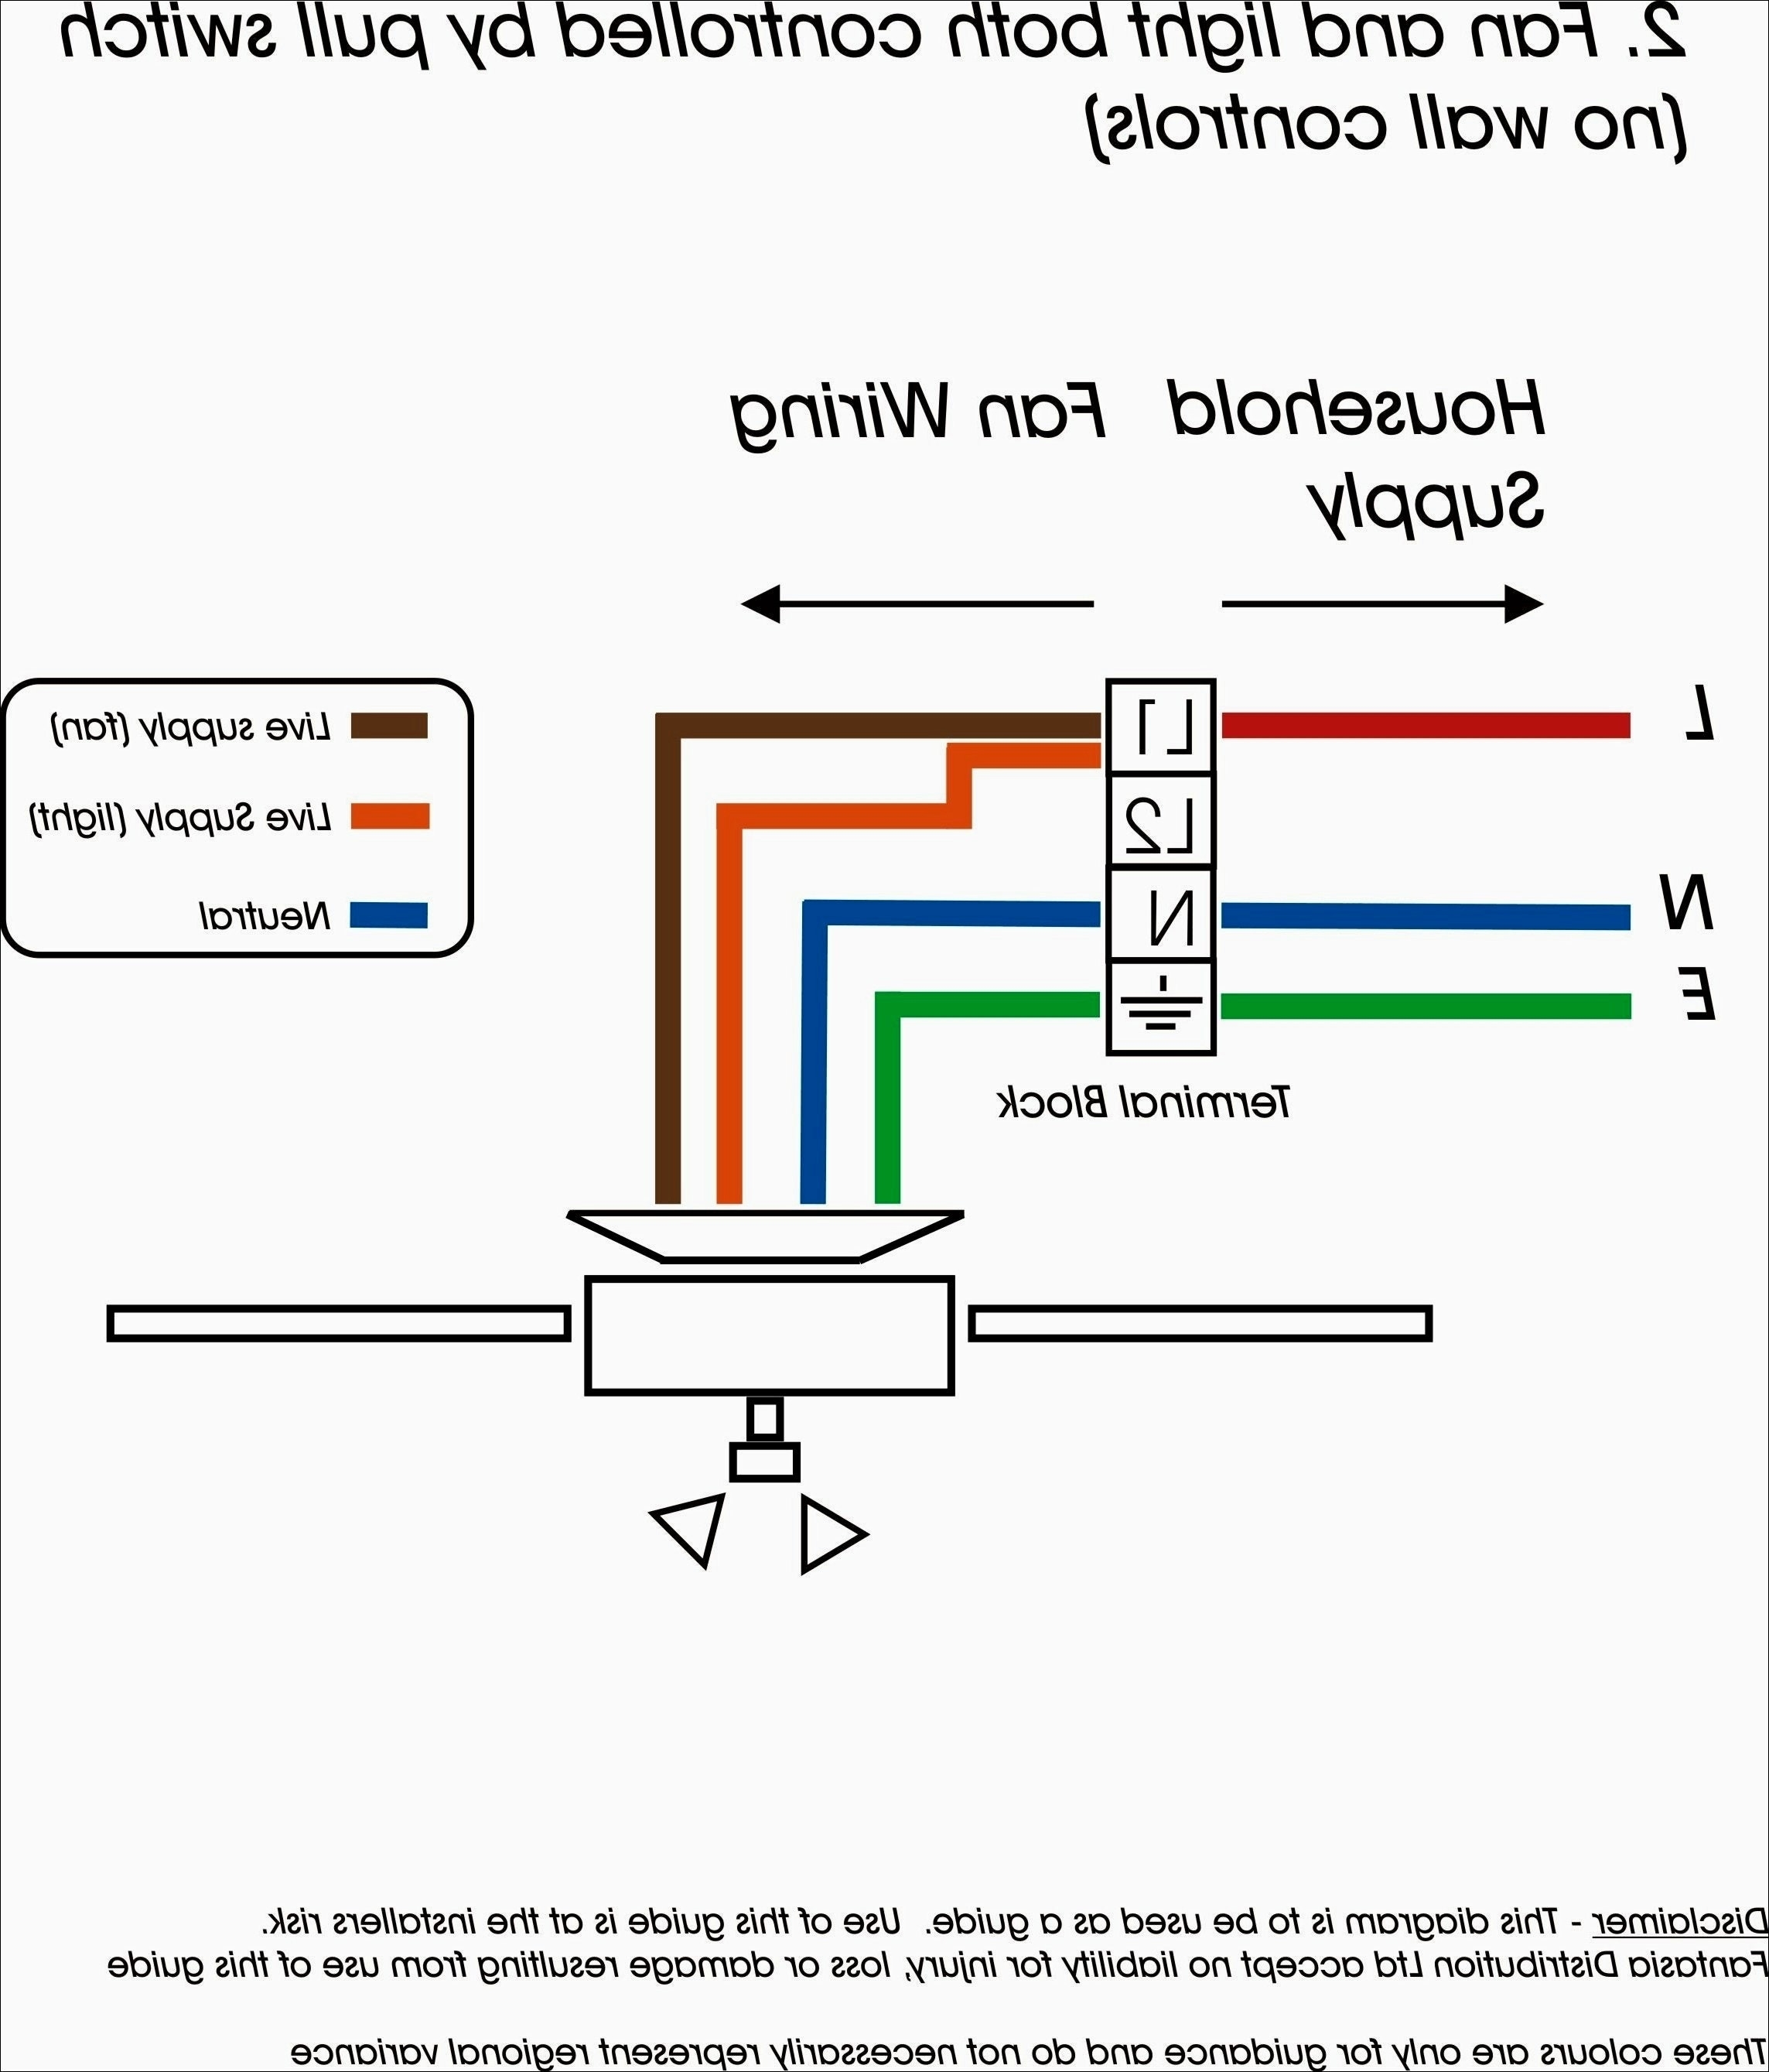 yale hoist wiring diagram Download-Yale Hoist Wiring Diagram Example Wiring Diagram For Yale Forklift Inspirationa Wiring Diagram 1-c